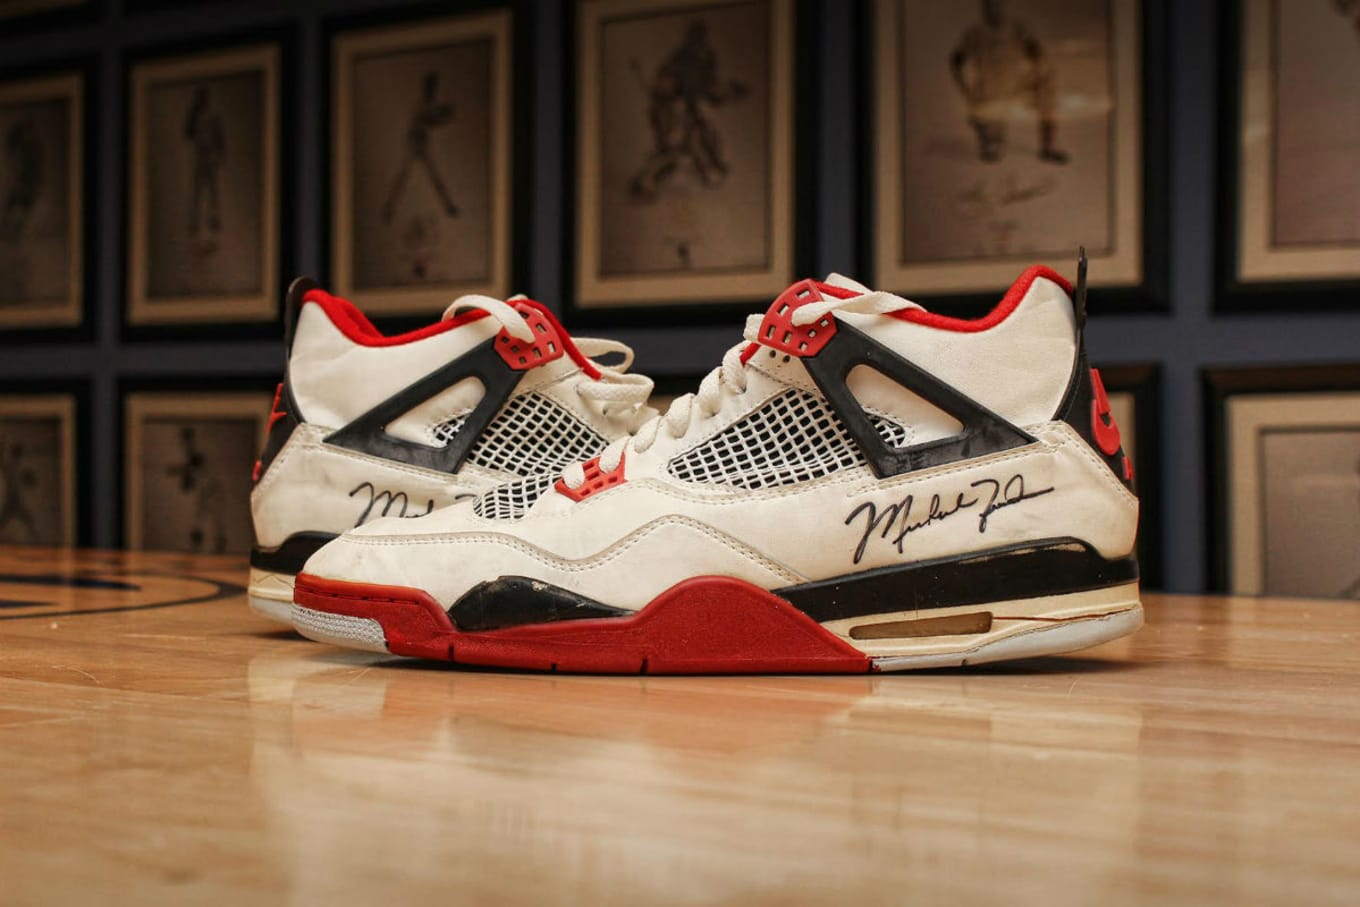 buy popular 6906f f83d3 Michael Jordan s Game-Worn Air Jordans From 1989 Are Up For Grabs.  Dual-signed